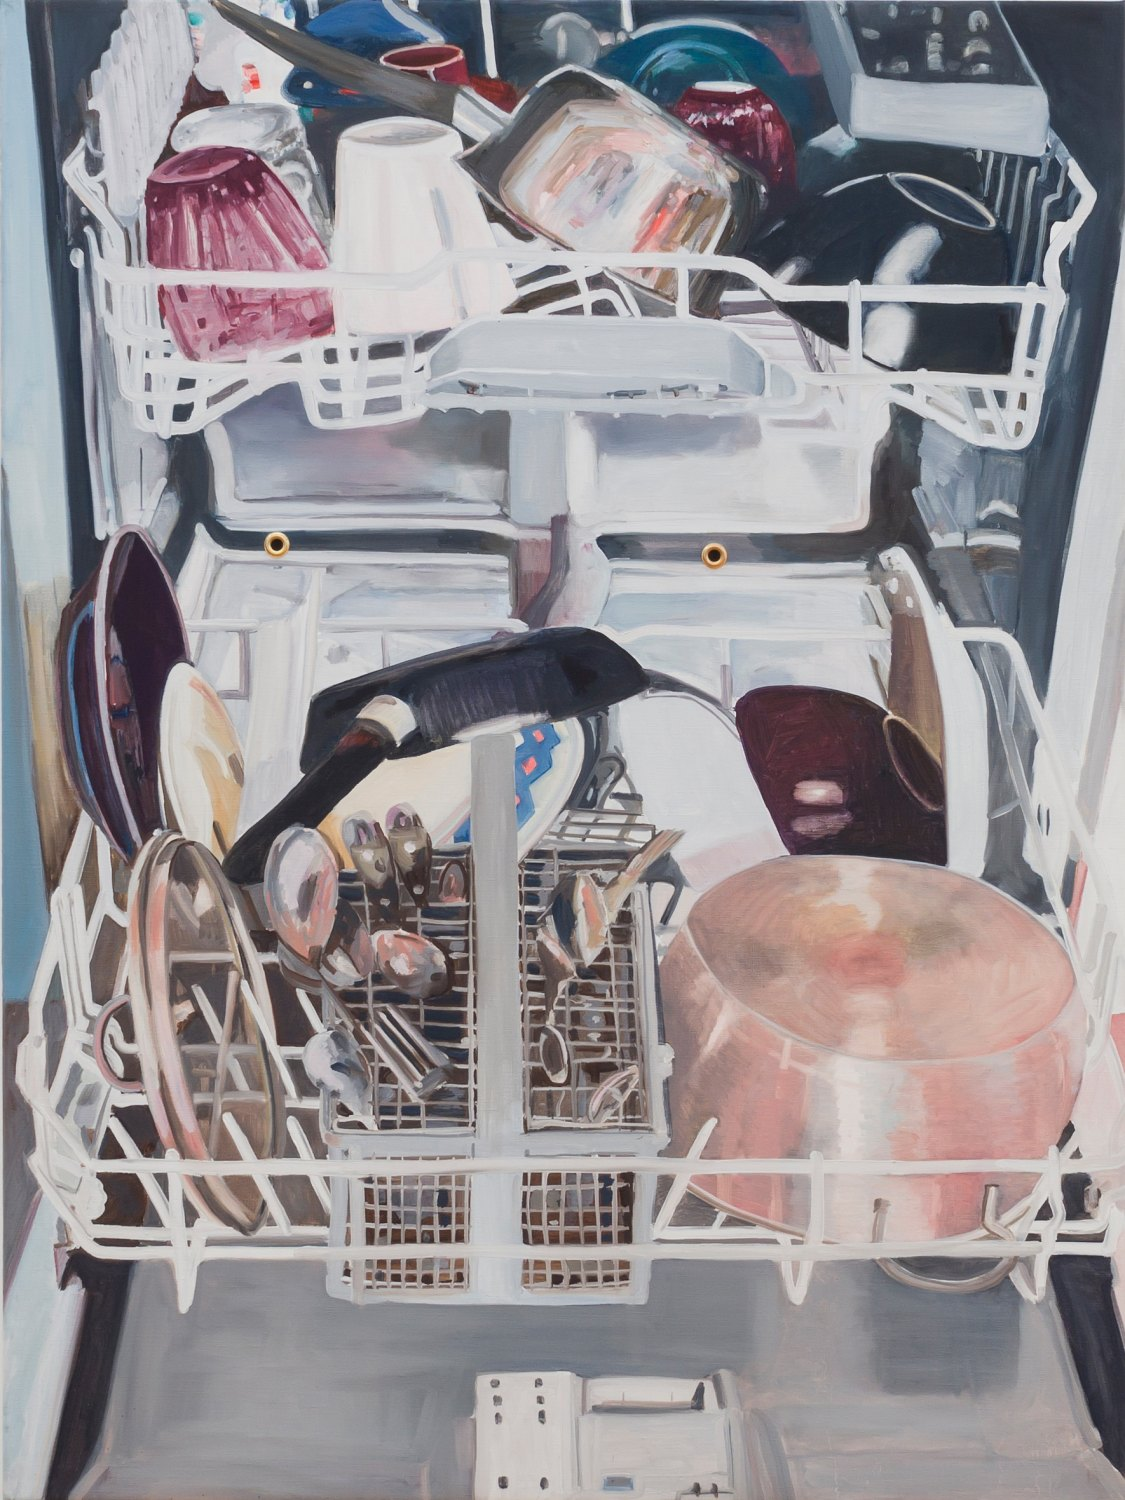 Jill Mulleady Beating the System, 2015 Oil on canvas, 105 x 91 cm